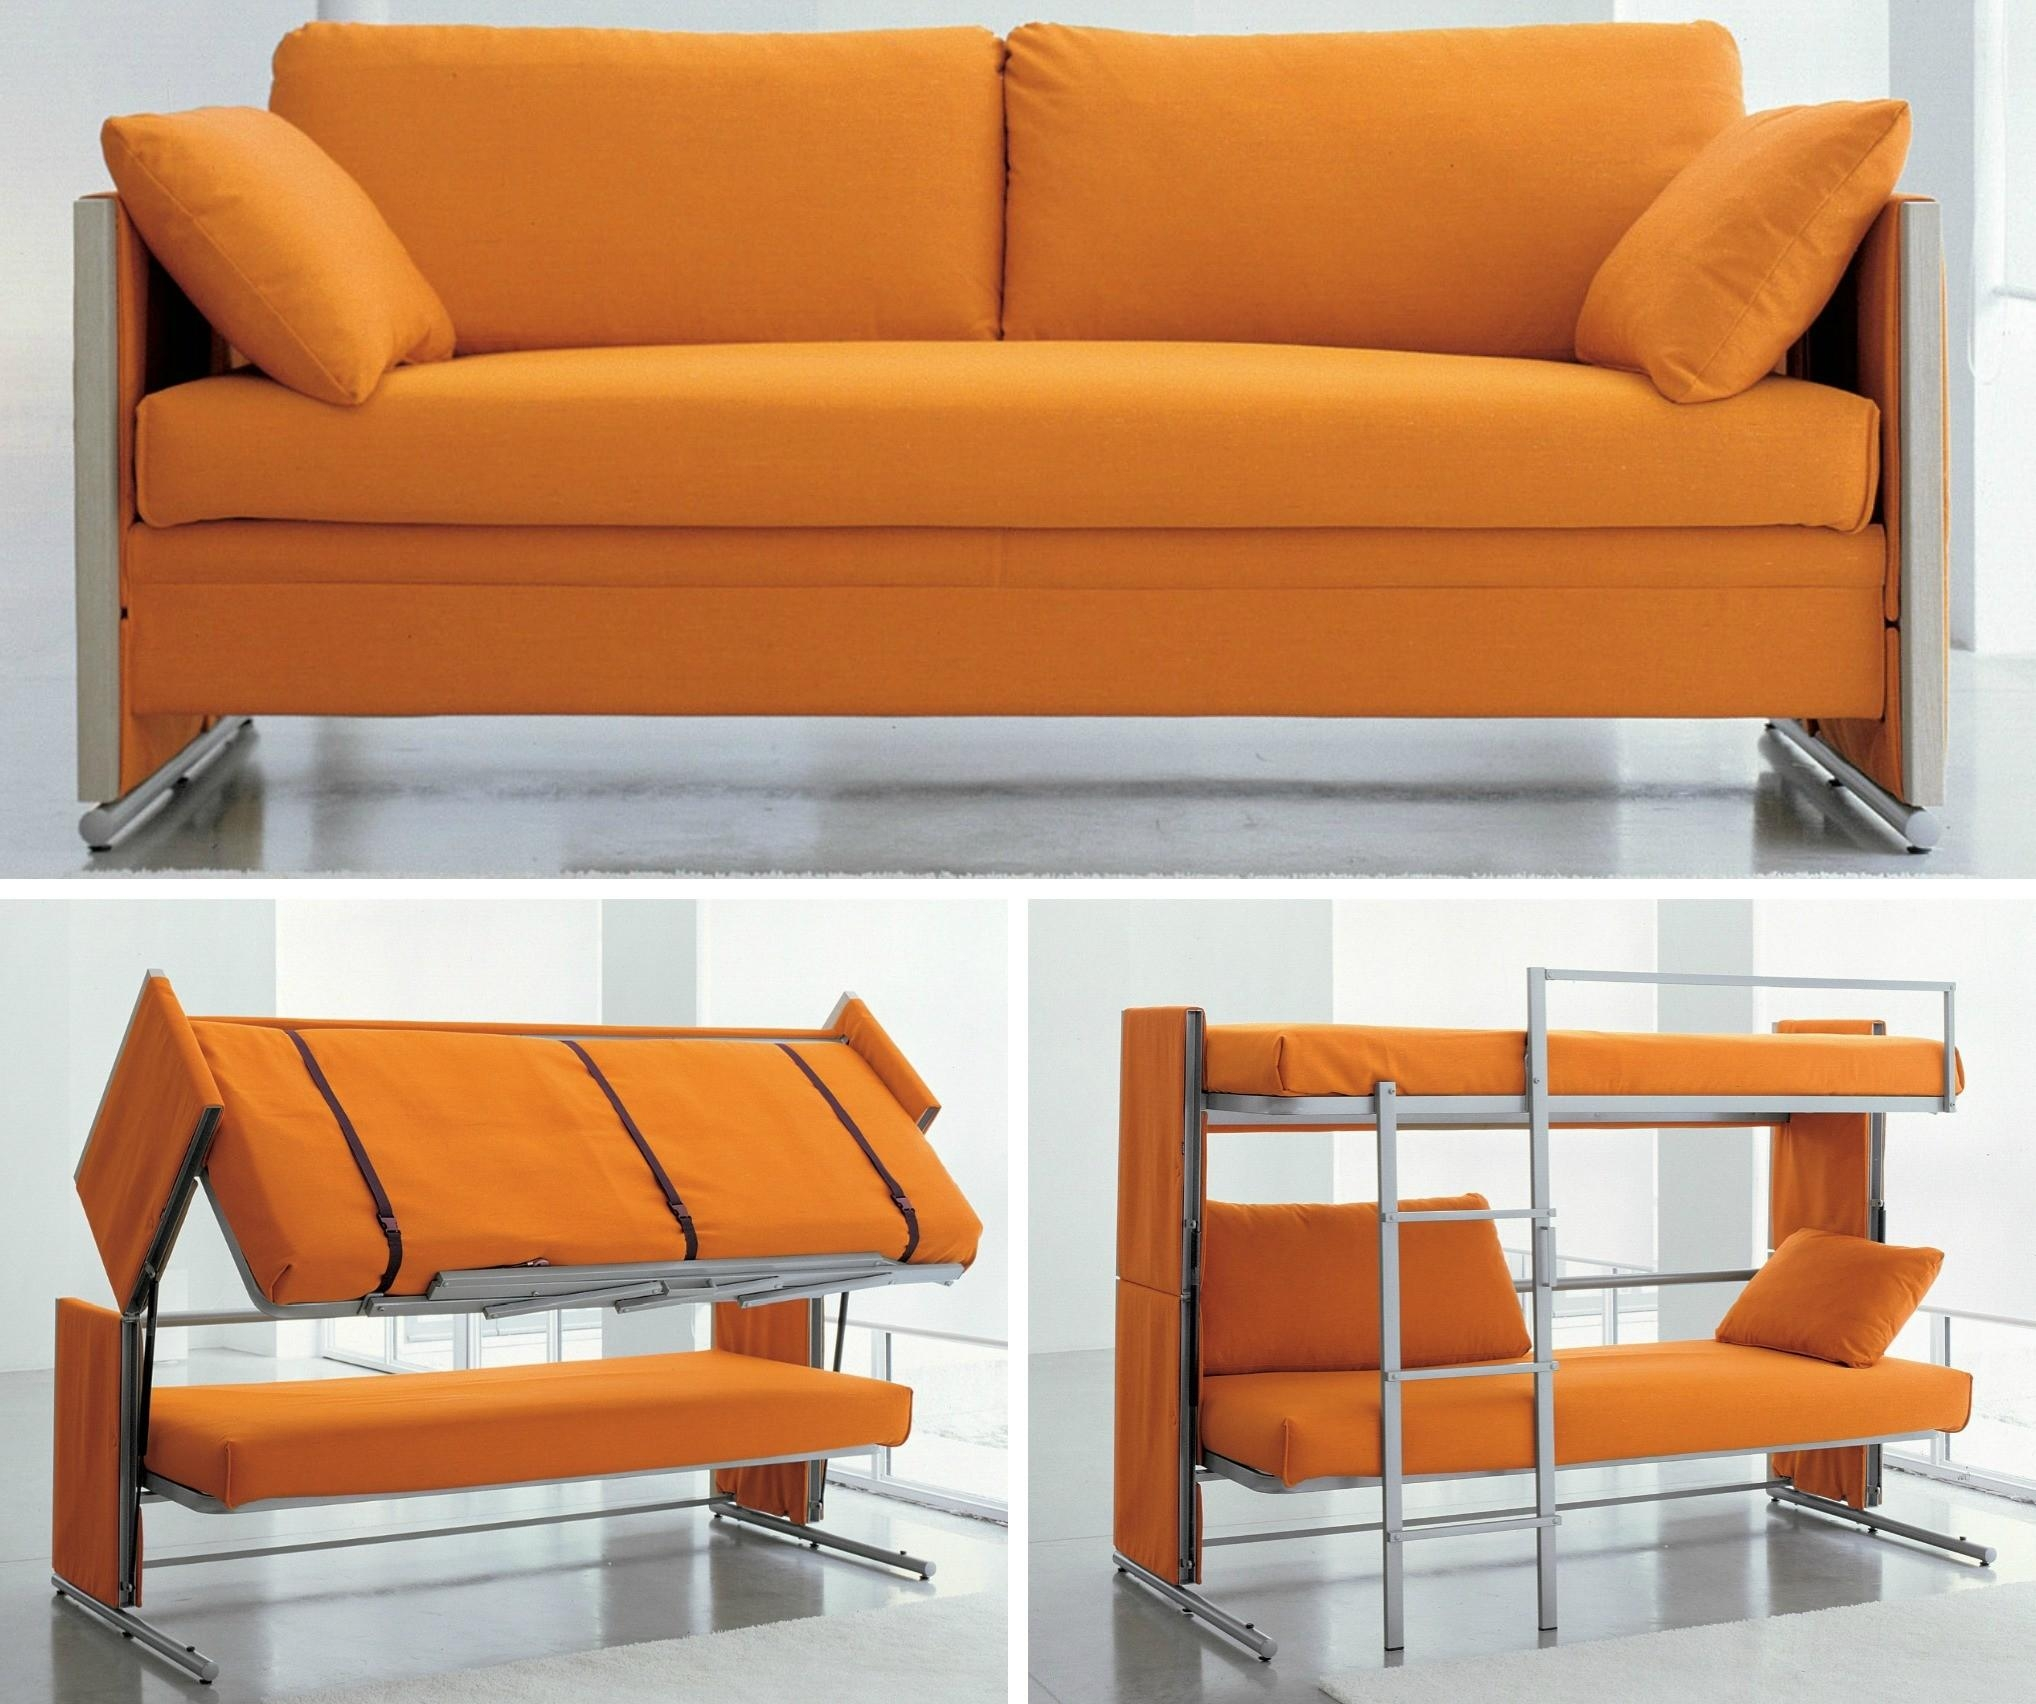 Doc Transforms From Sofa To Bunk Beds With One Swift Motion | 6Sqft Pertaining To Sofa Bunk Beds (Image 10 of 20)